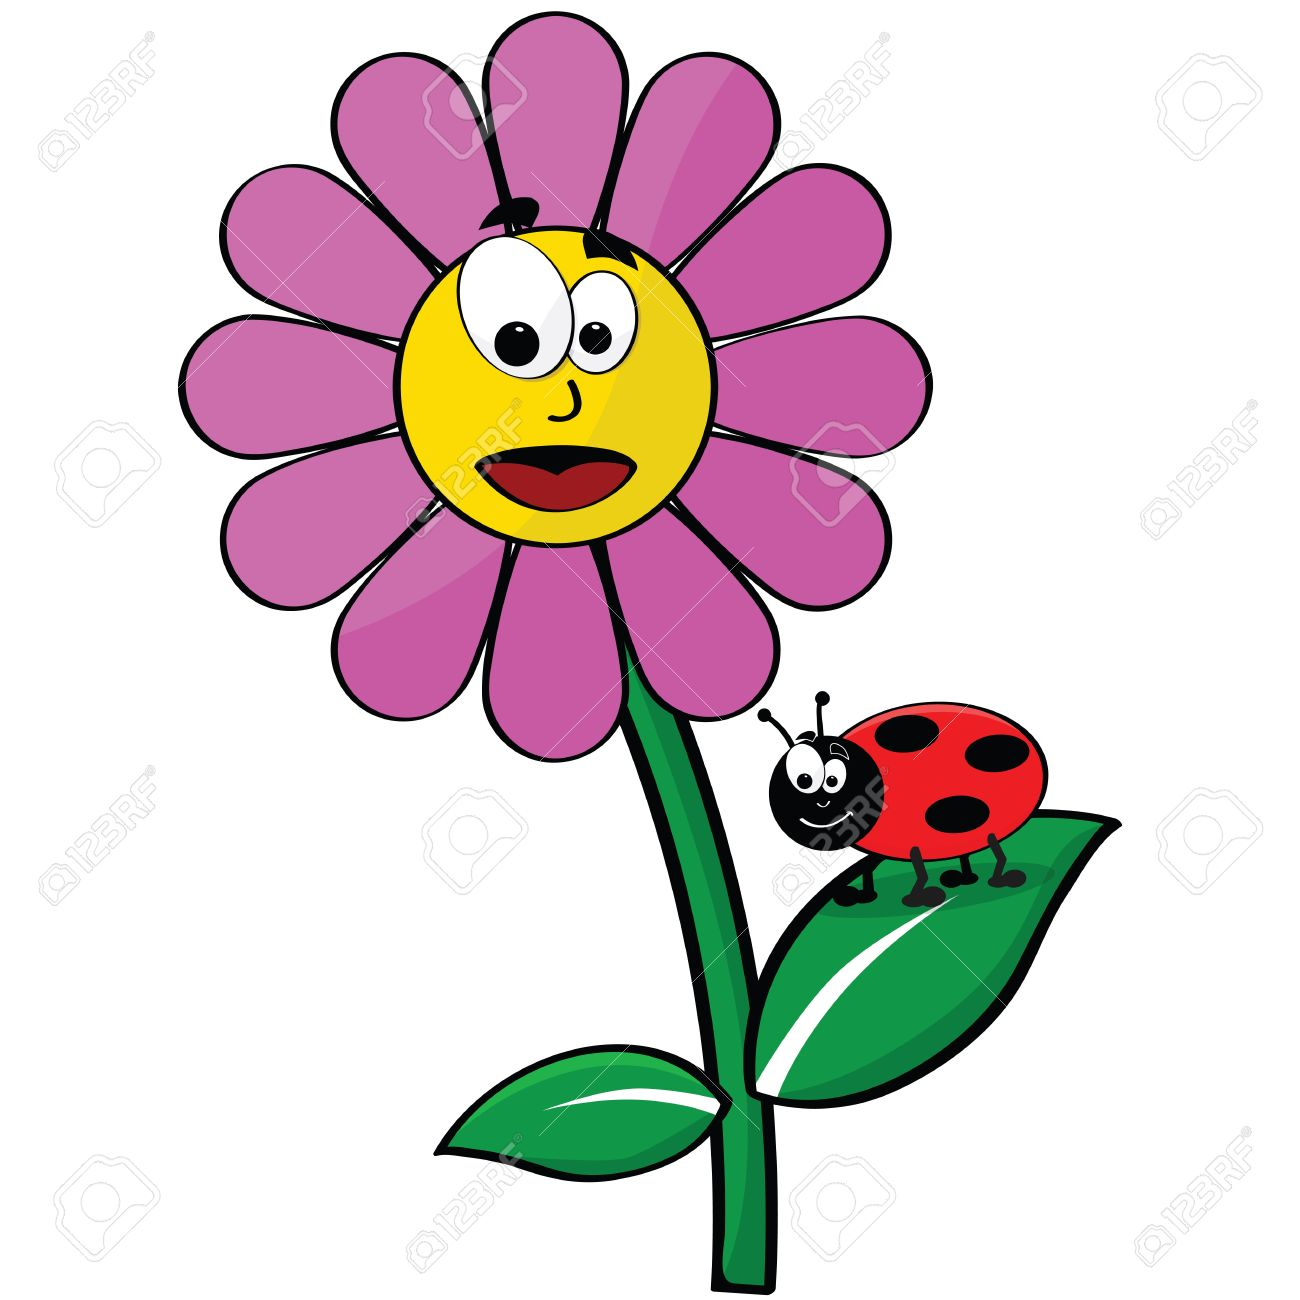 1300x1300 22,072 Ladybug Stock Illustrations, Cliparts And Royalty Free